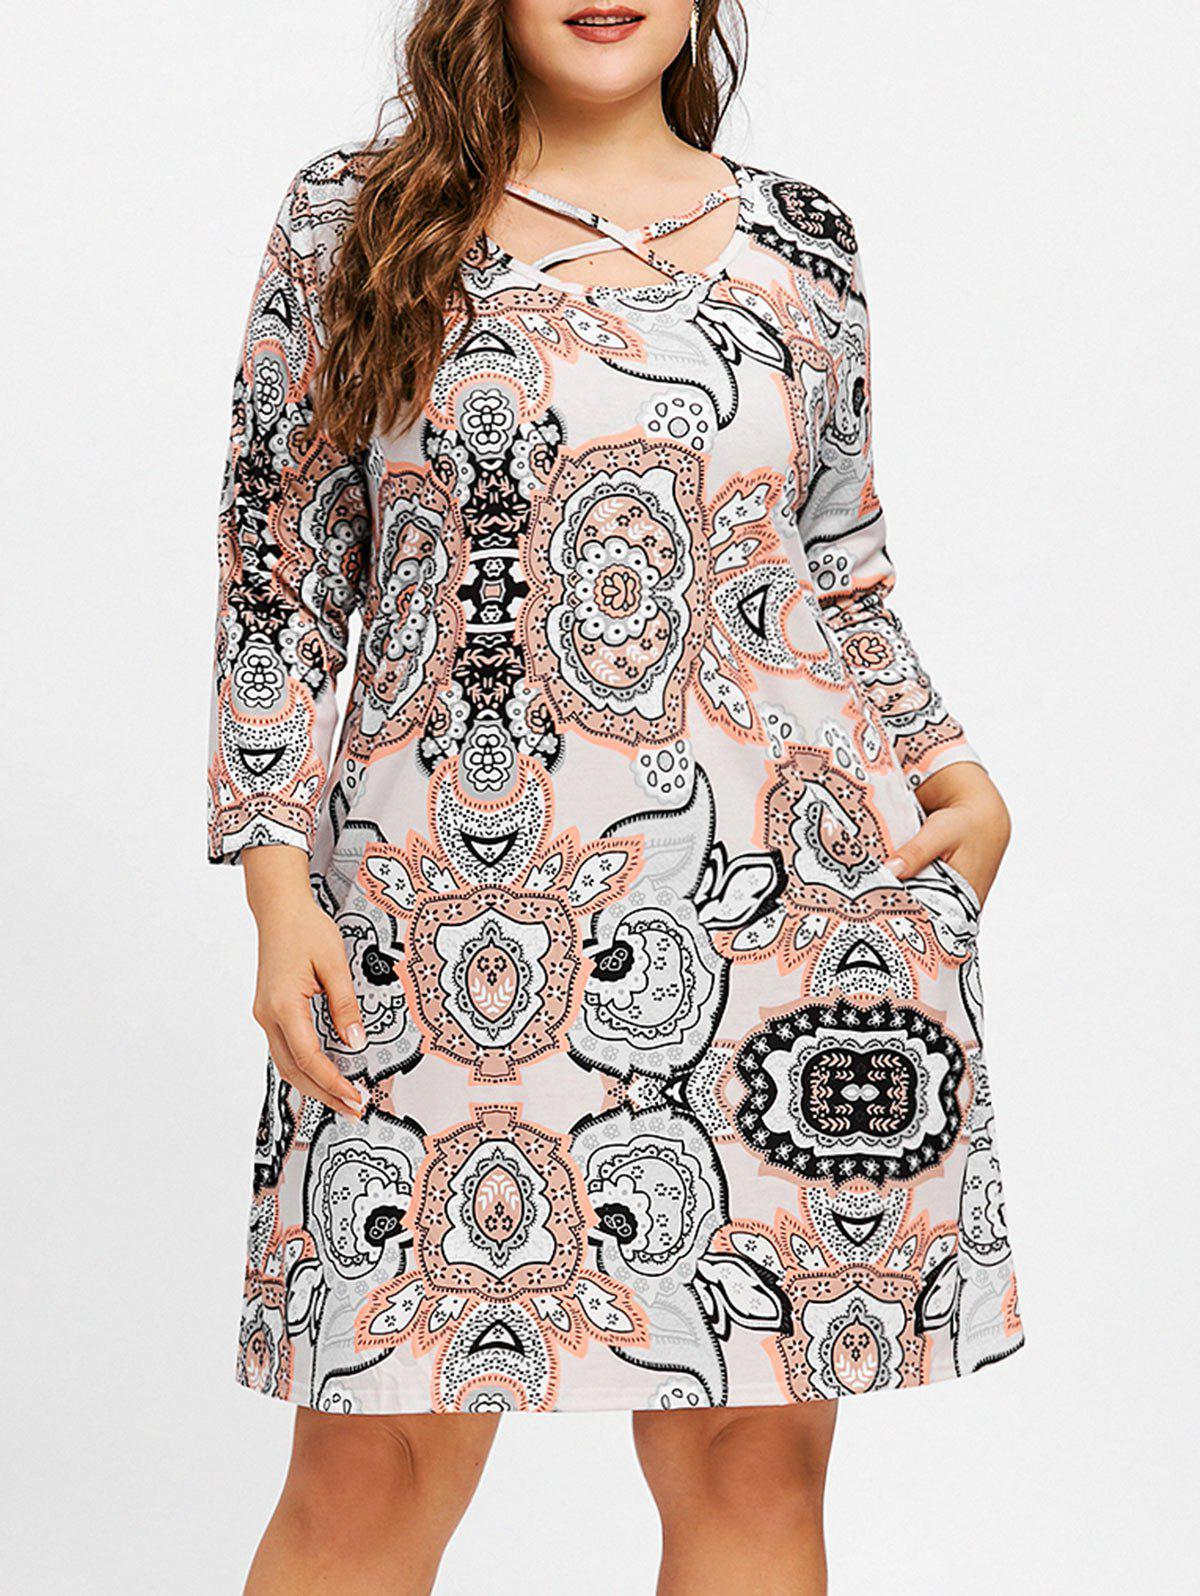 Affordable Criss Cross Floral Print Plus Size Tunic Dress